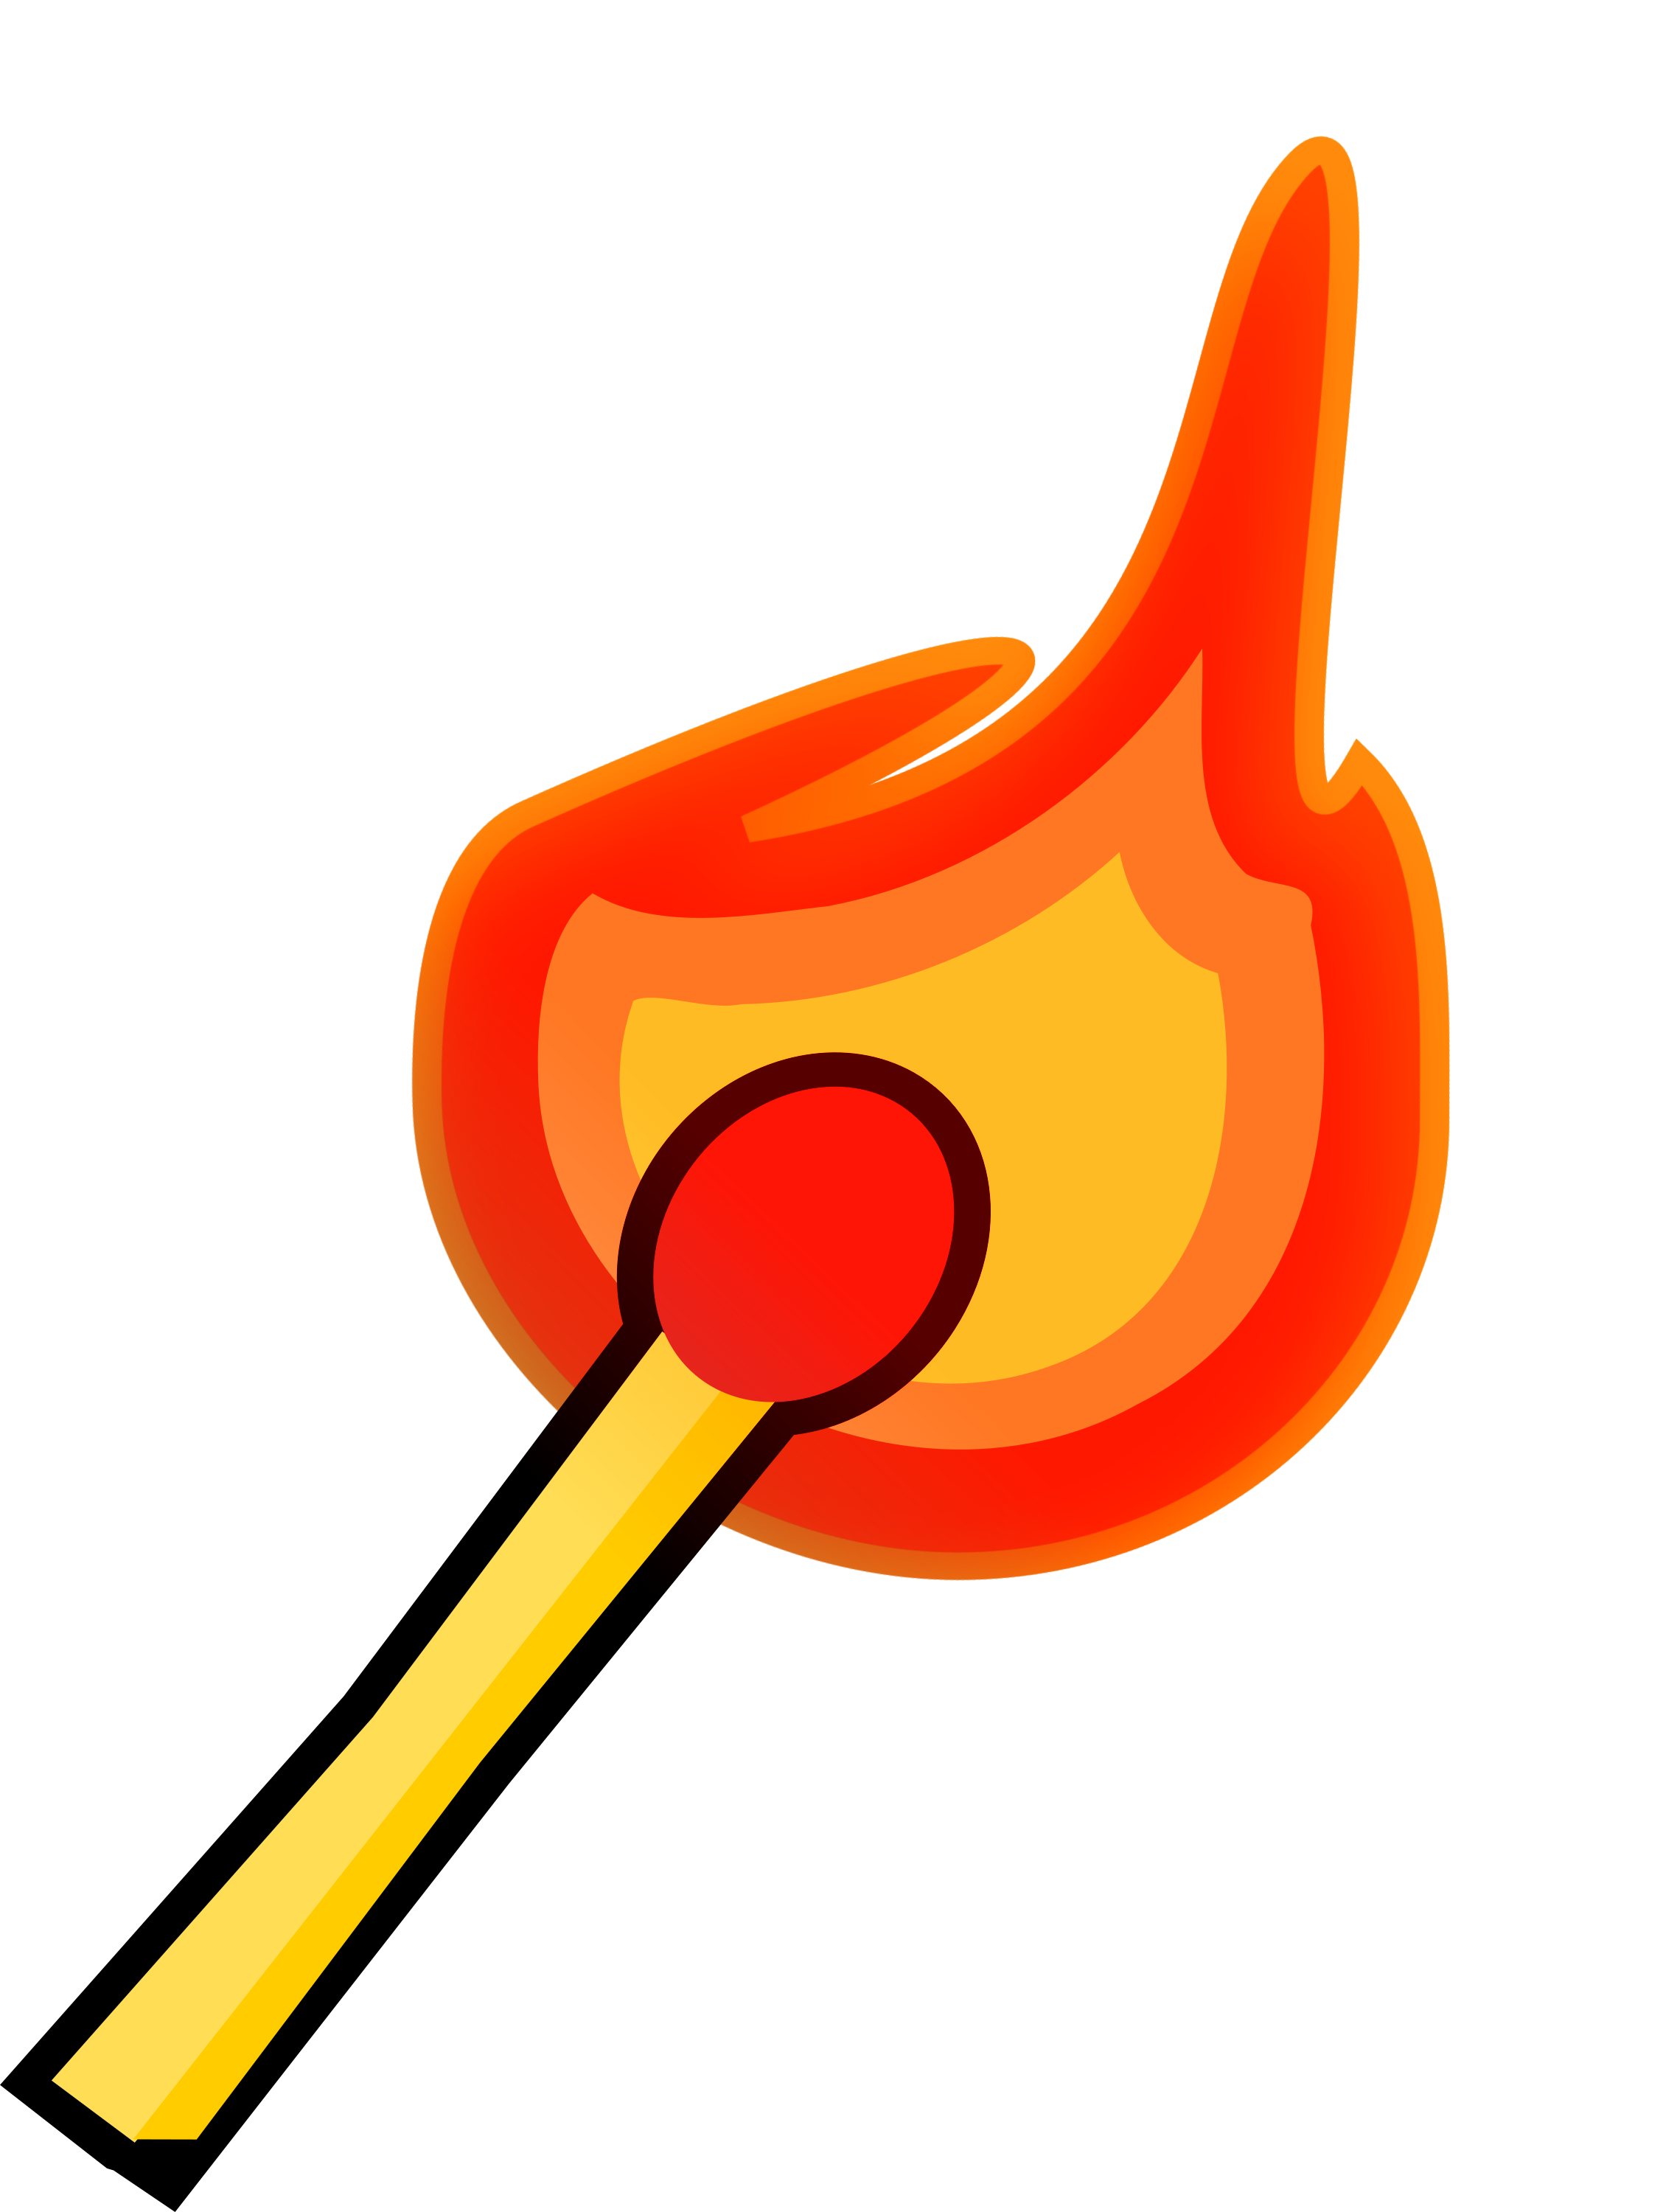 Fire clipart. Flames at getdrawings com